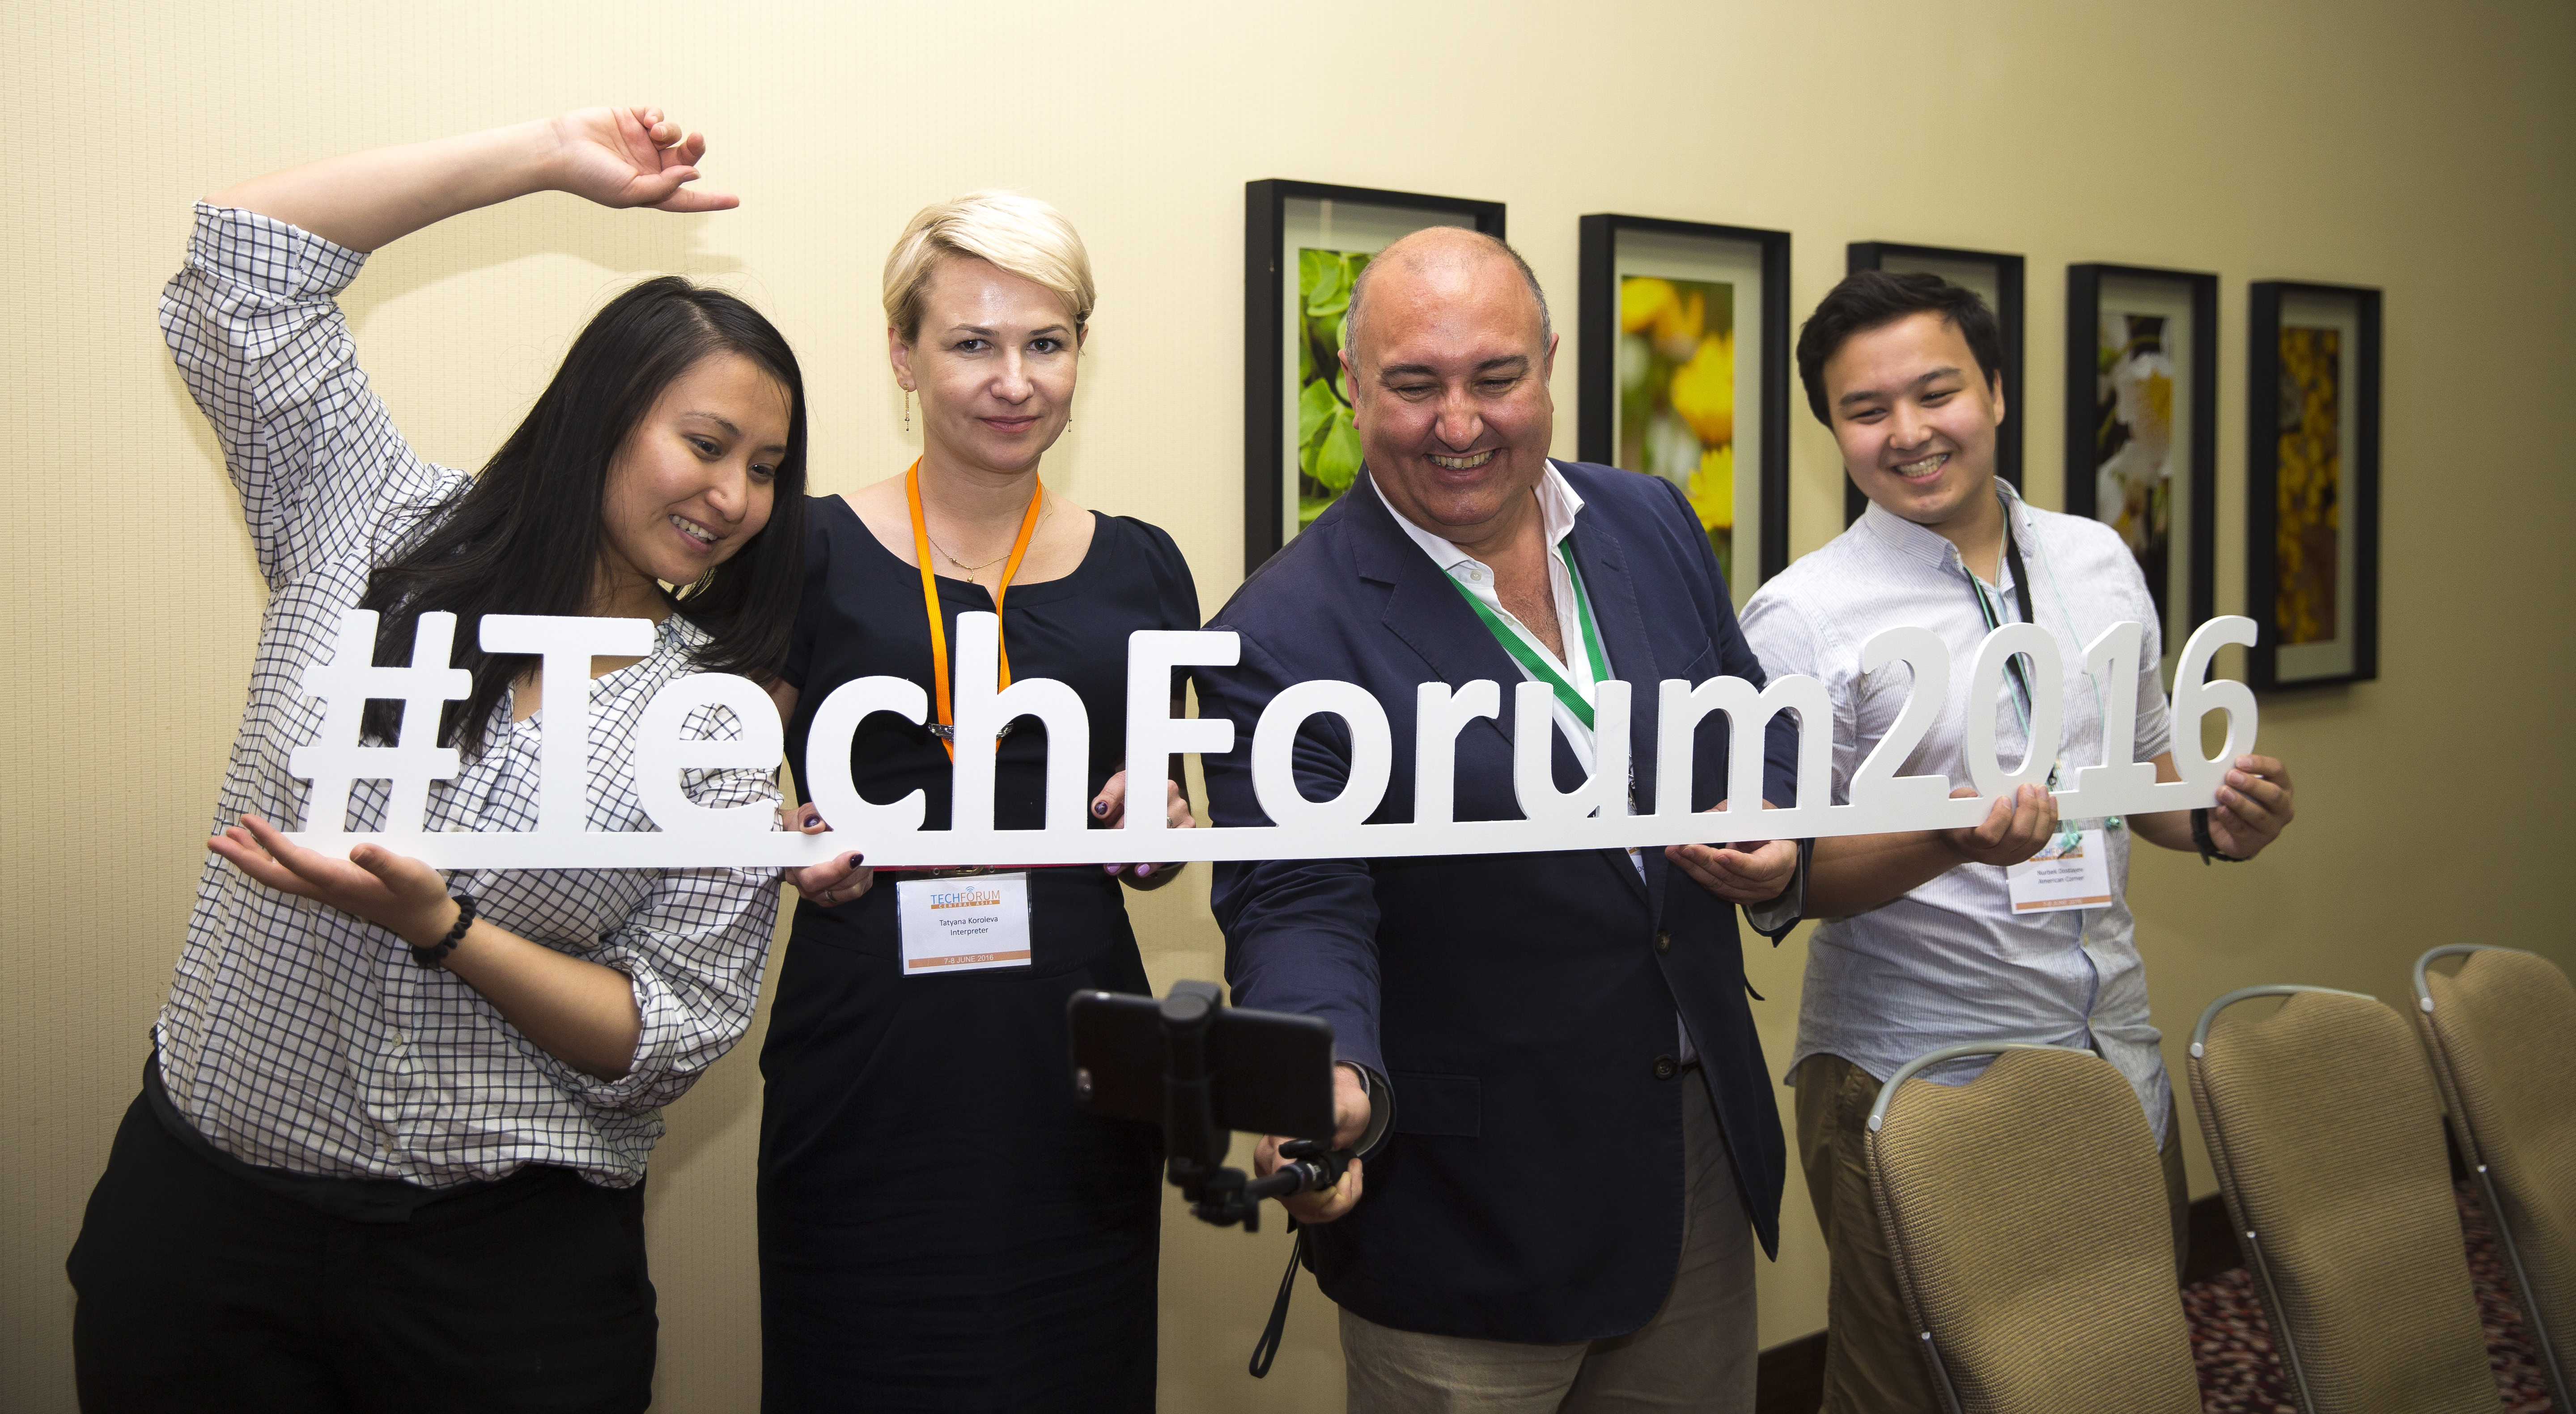 TechForum Central Asia participants and trainers posing with hashtags during a break